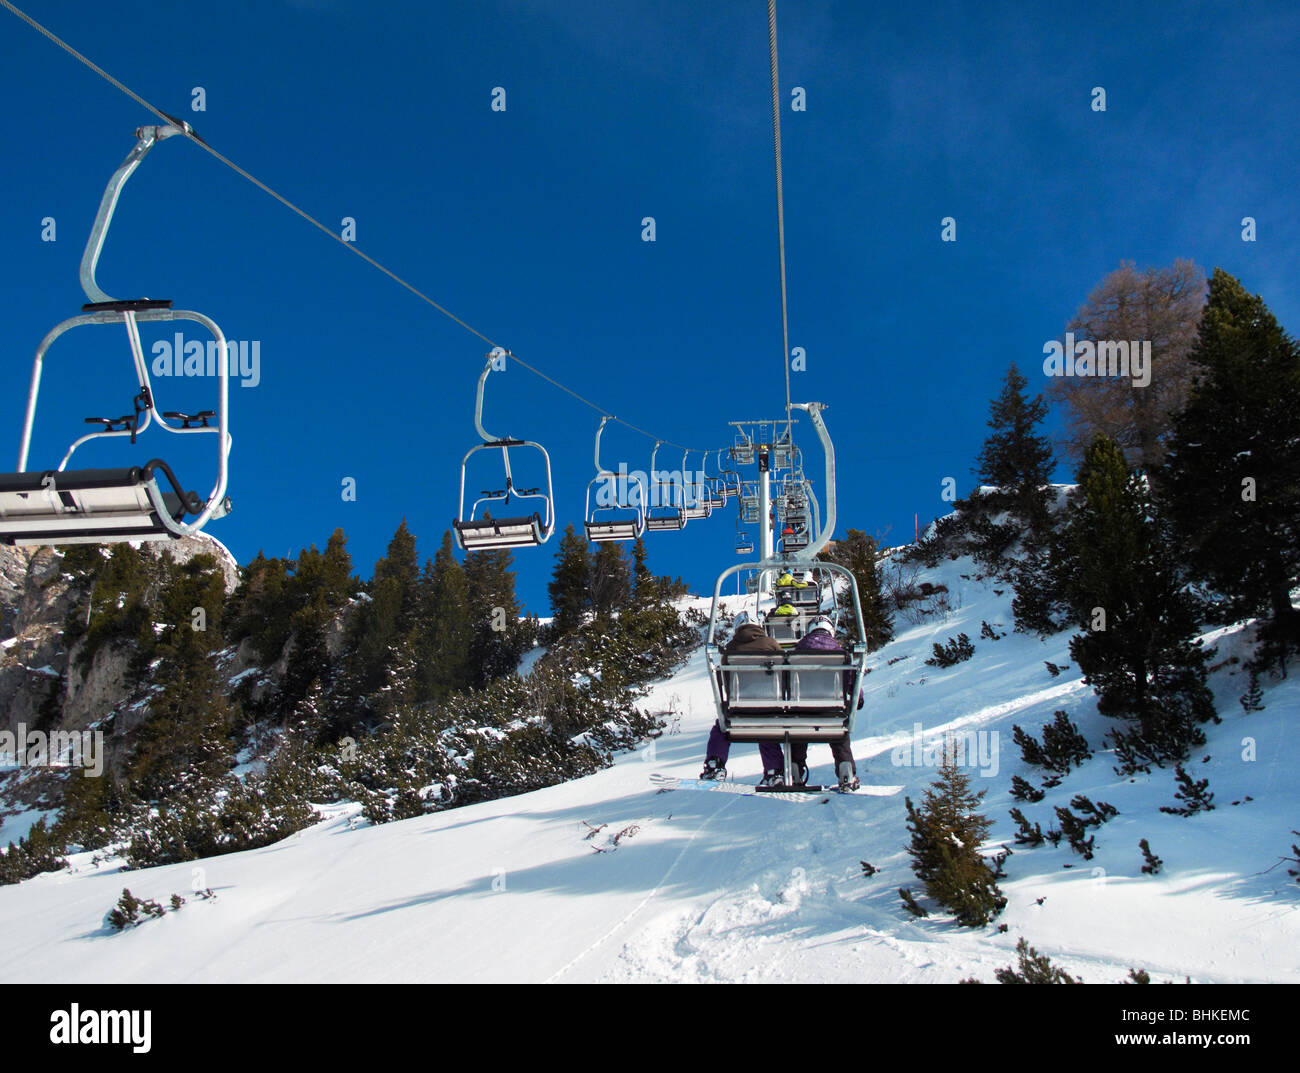 Chairlift at the top of the Rofanseilbahn, Maurach, Lake Achensee, Tyrol, Austria - Stock Image